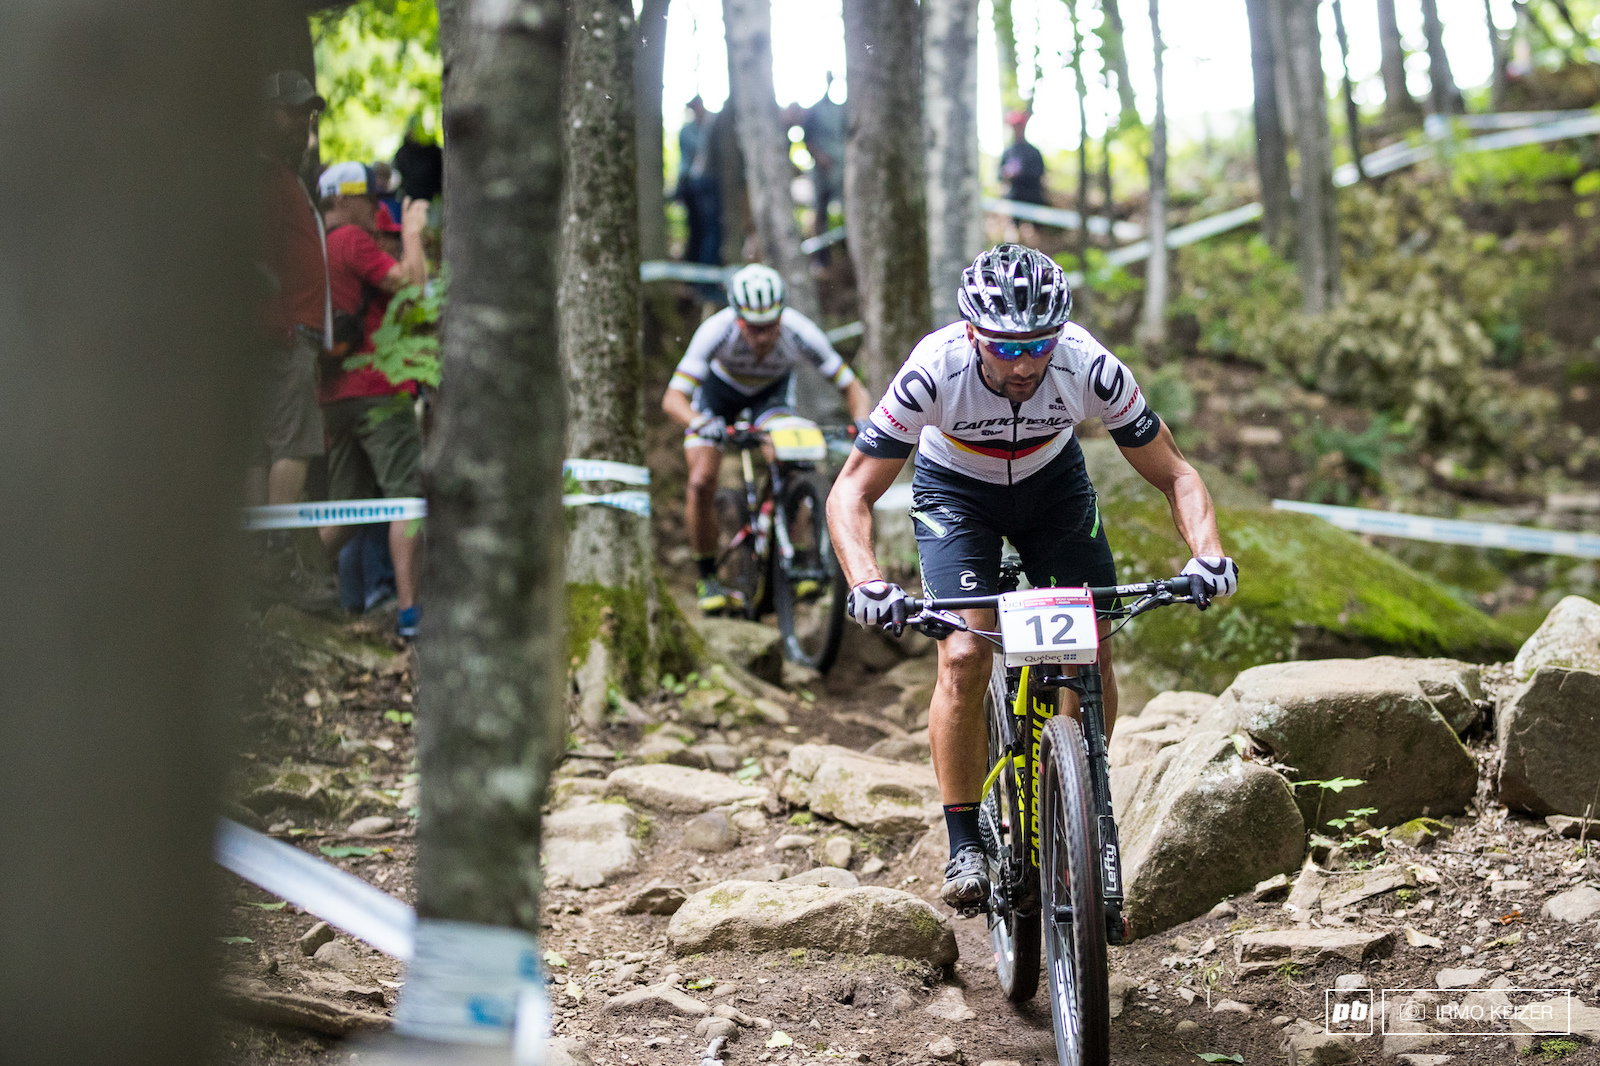 Manuel Fumic took the gamble and overtook Nino Schurter. Flat out. Schurter overtook him shortly after. Fumic finished in 6th.